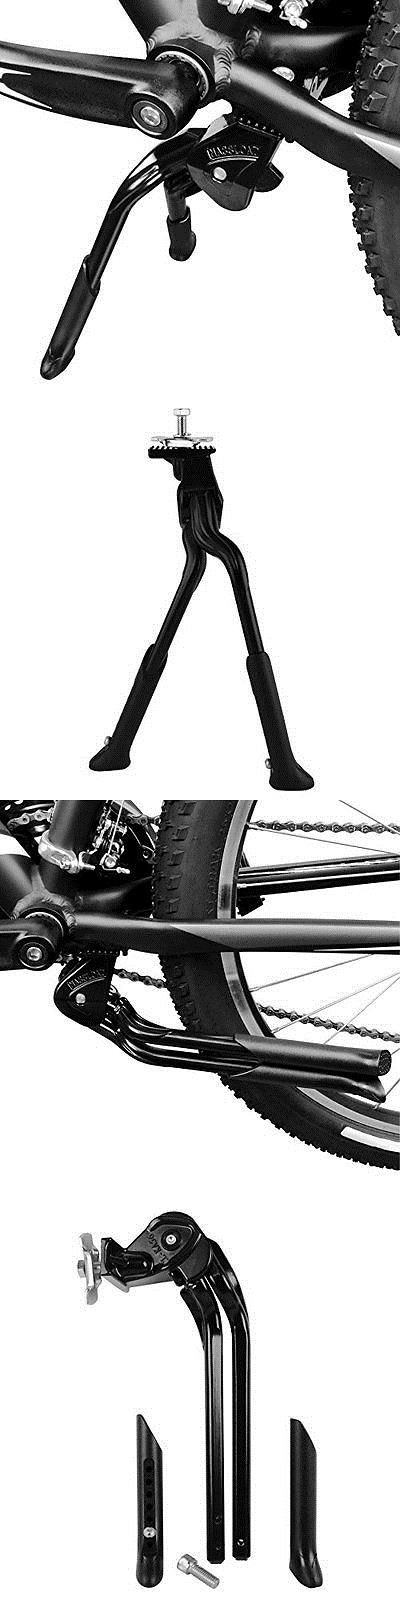 Kickstands 177837: Bv Bicycle Black Adjustable Foldable Double Leg Kickstand Storage Bicycle Bike -> BUY IT NOW ONLY: $30.08 on eBay!